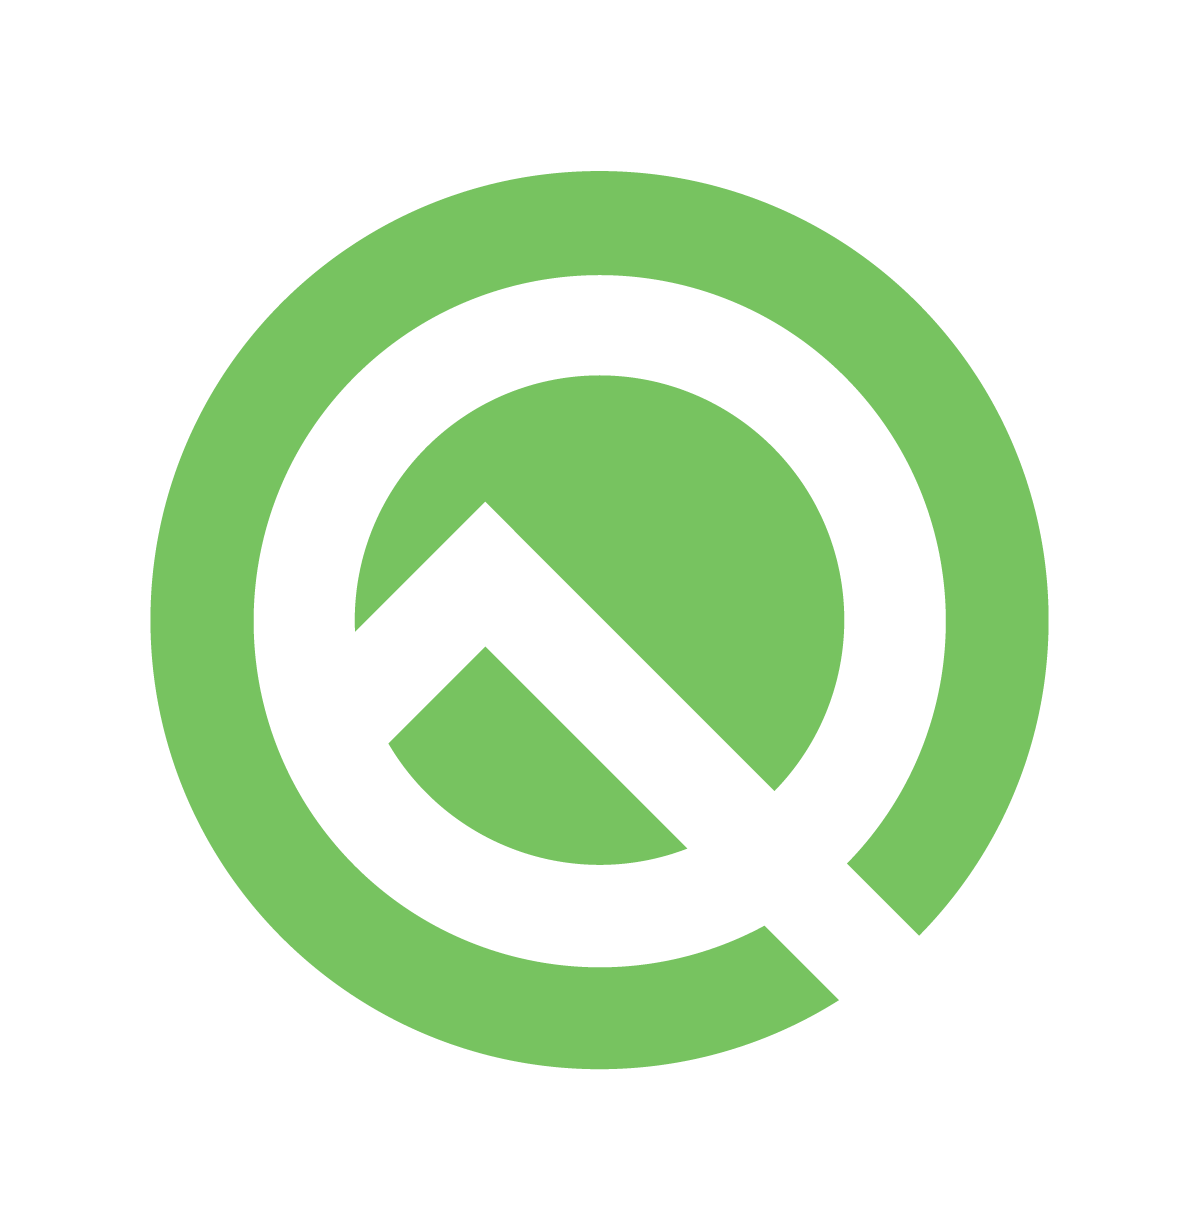 Android Q ベータ版のロゴ